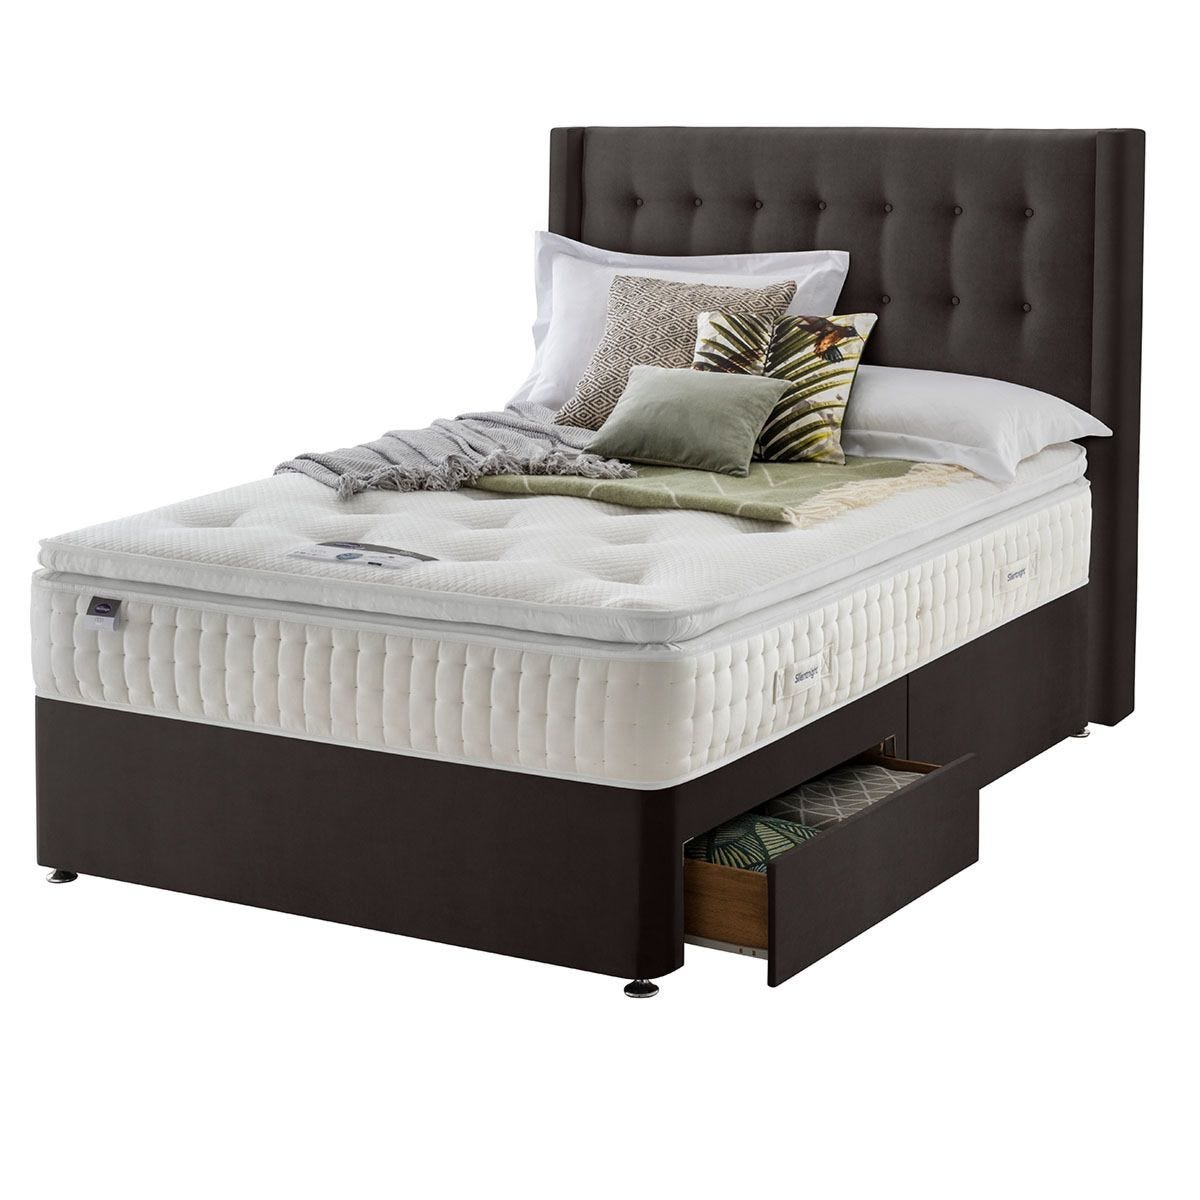 Silentnight Mirapocket Latex 1400 2-Drawer Divan Bed - Velvet Charcoal Double